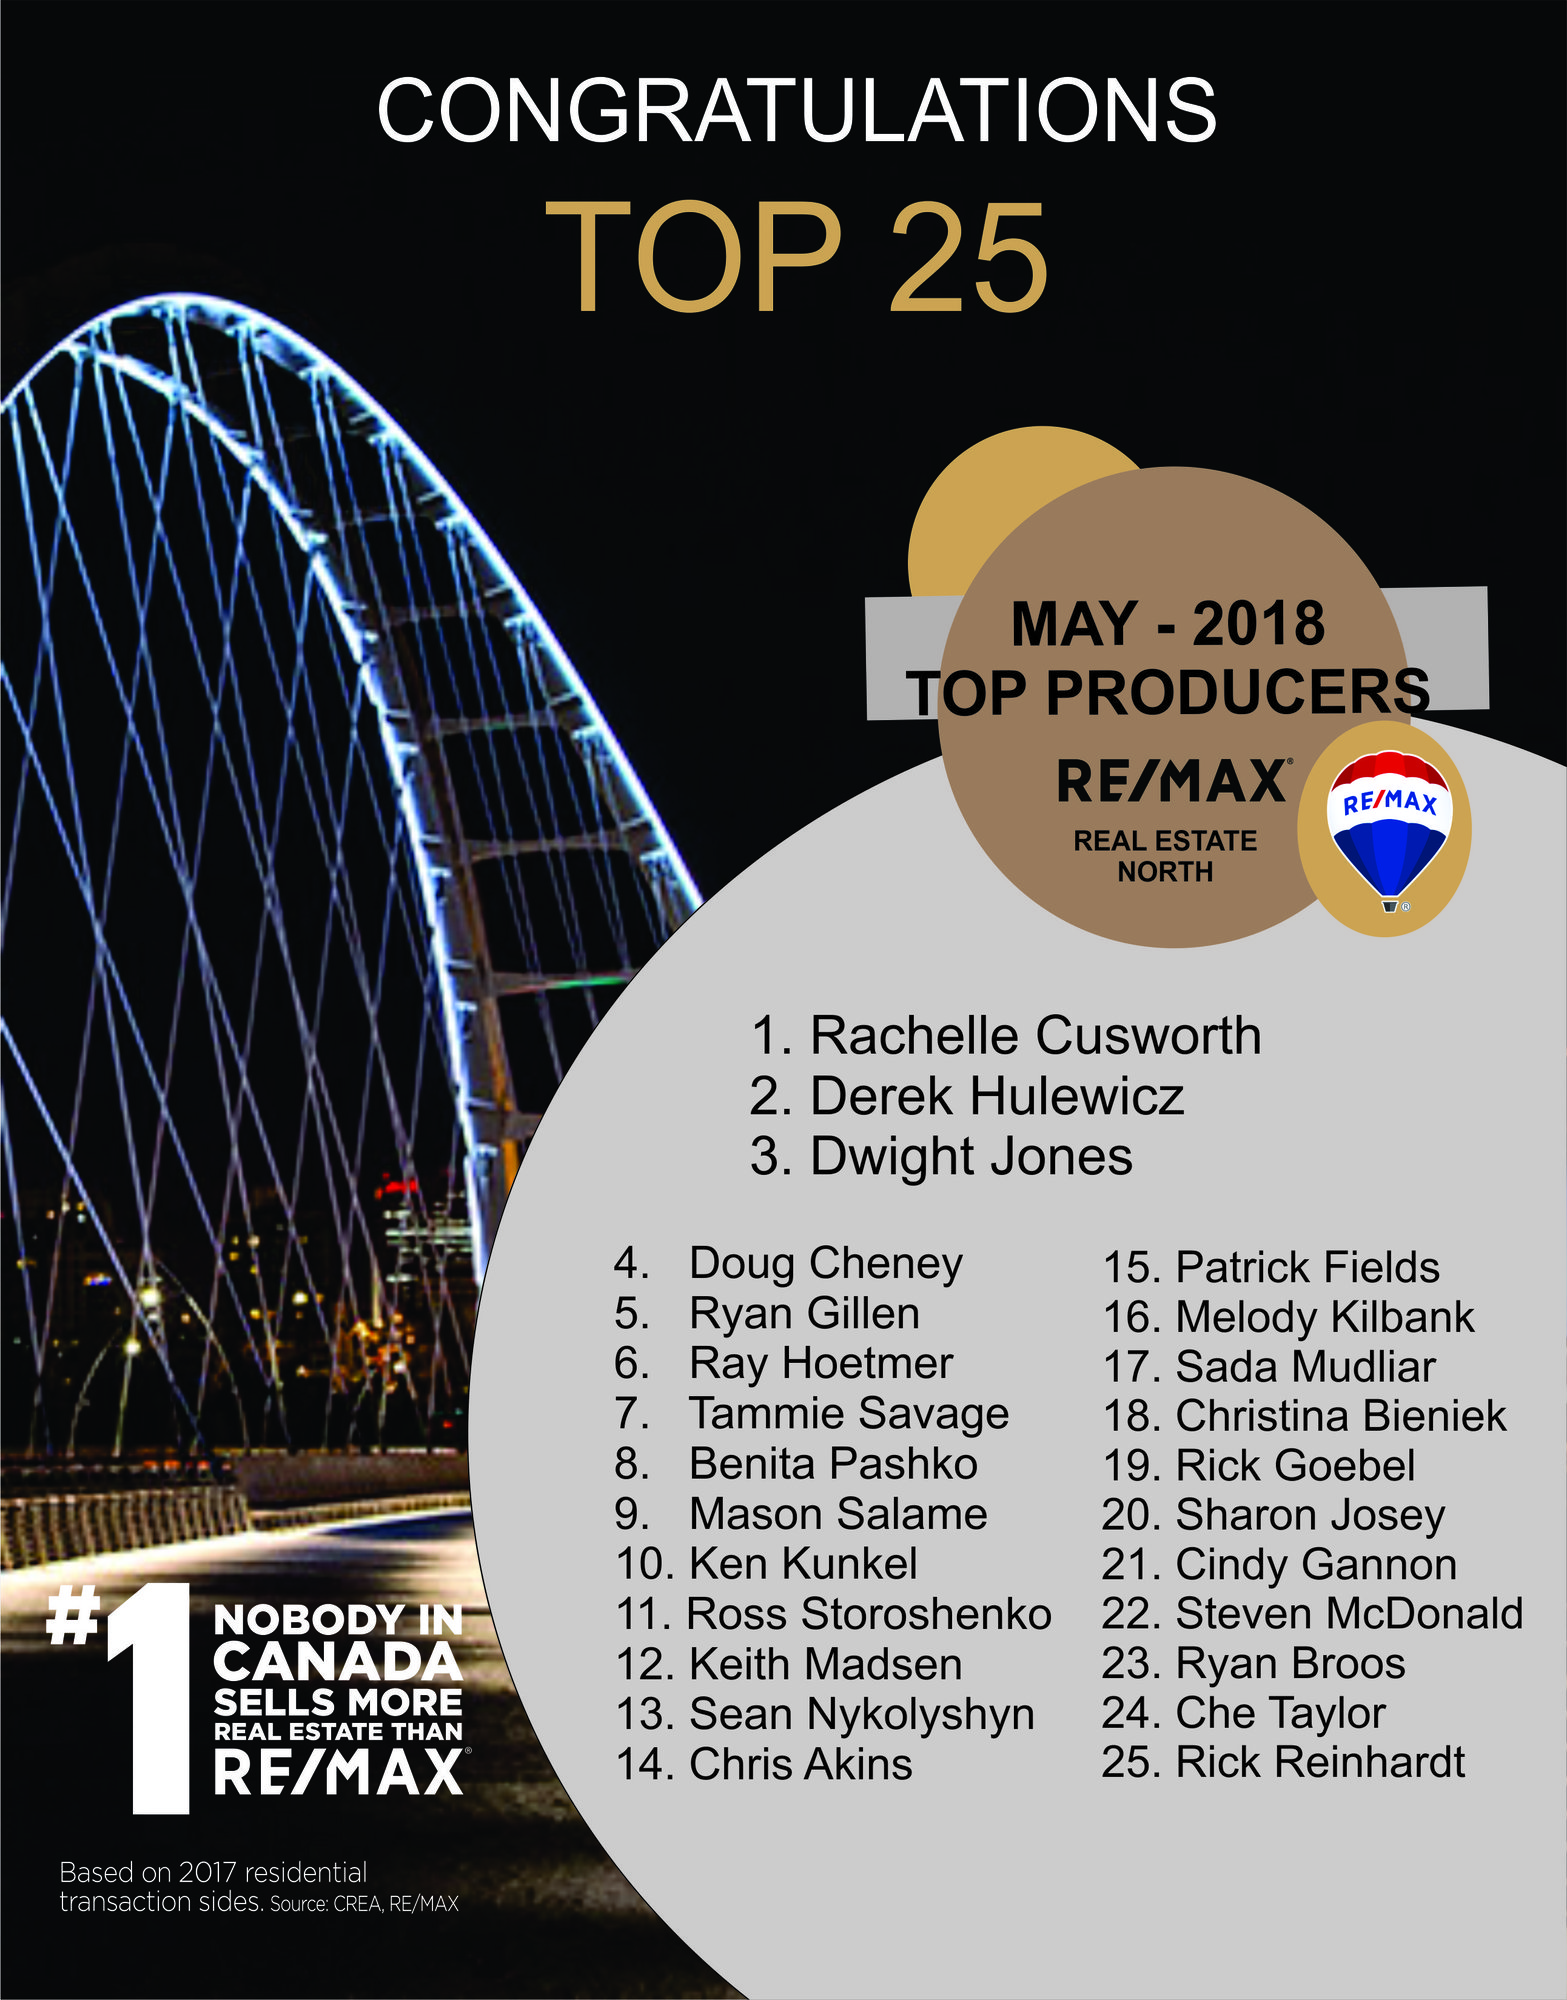 top producer list for remax realtors for may of 2018